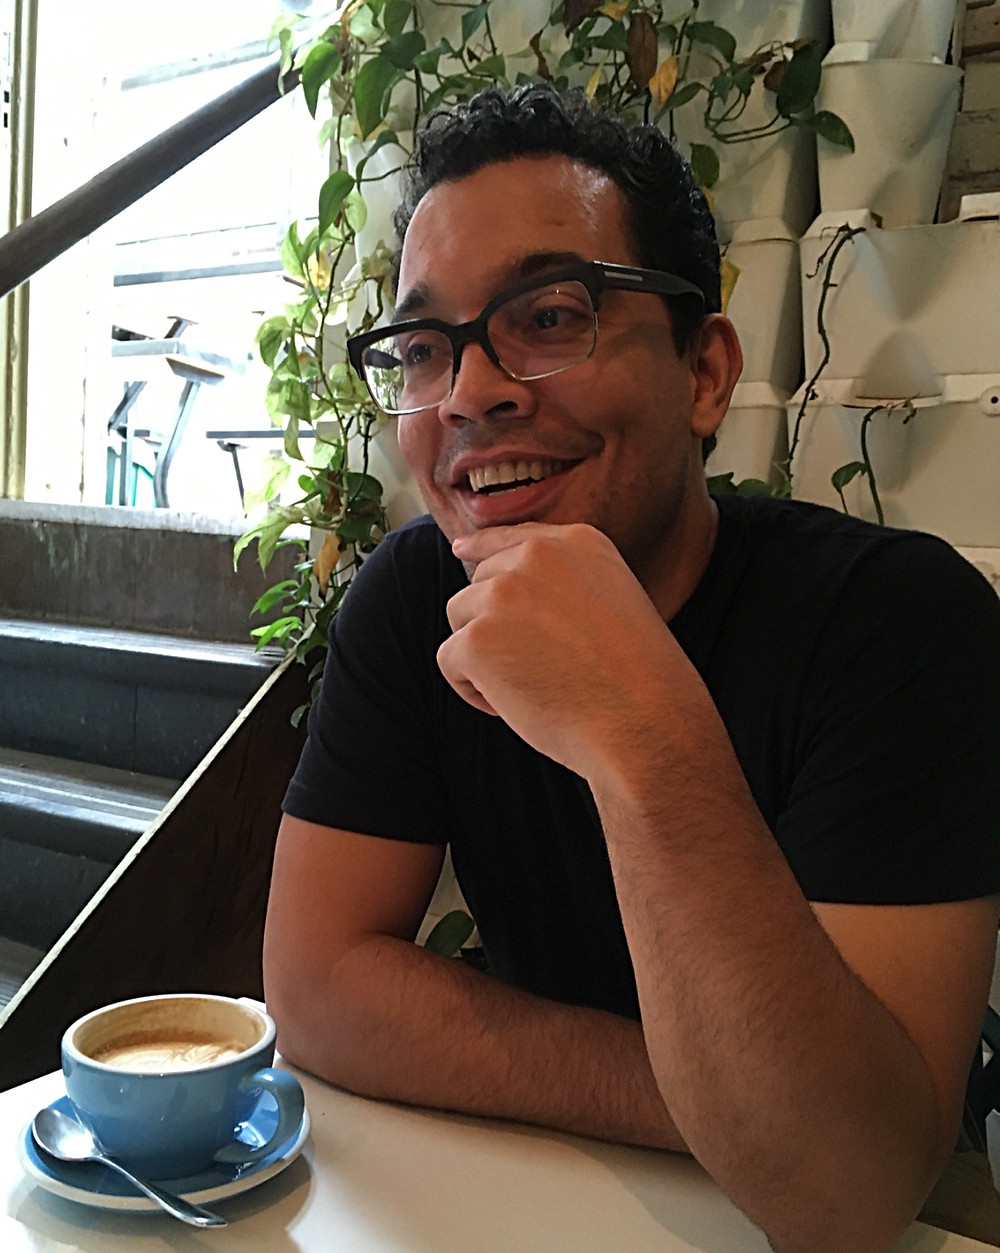 First Edition of Cafepreneur in Uptown Waterloo, ON